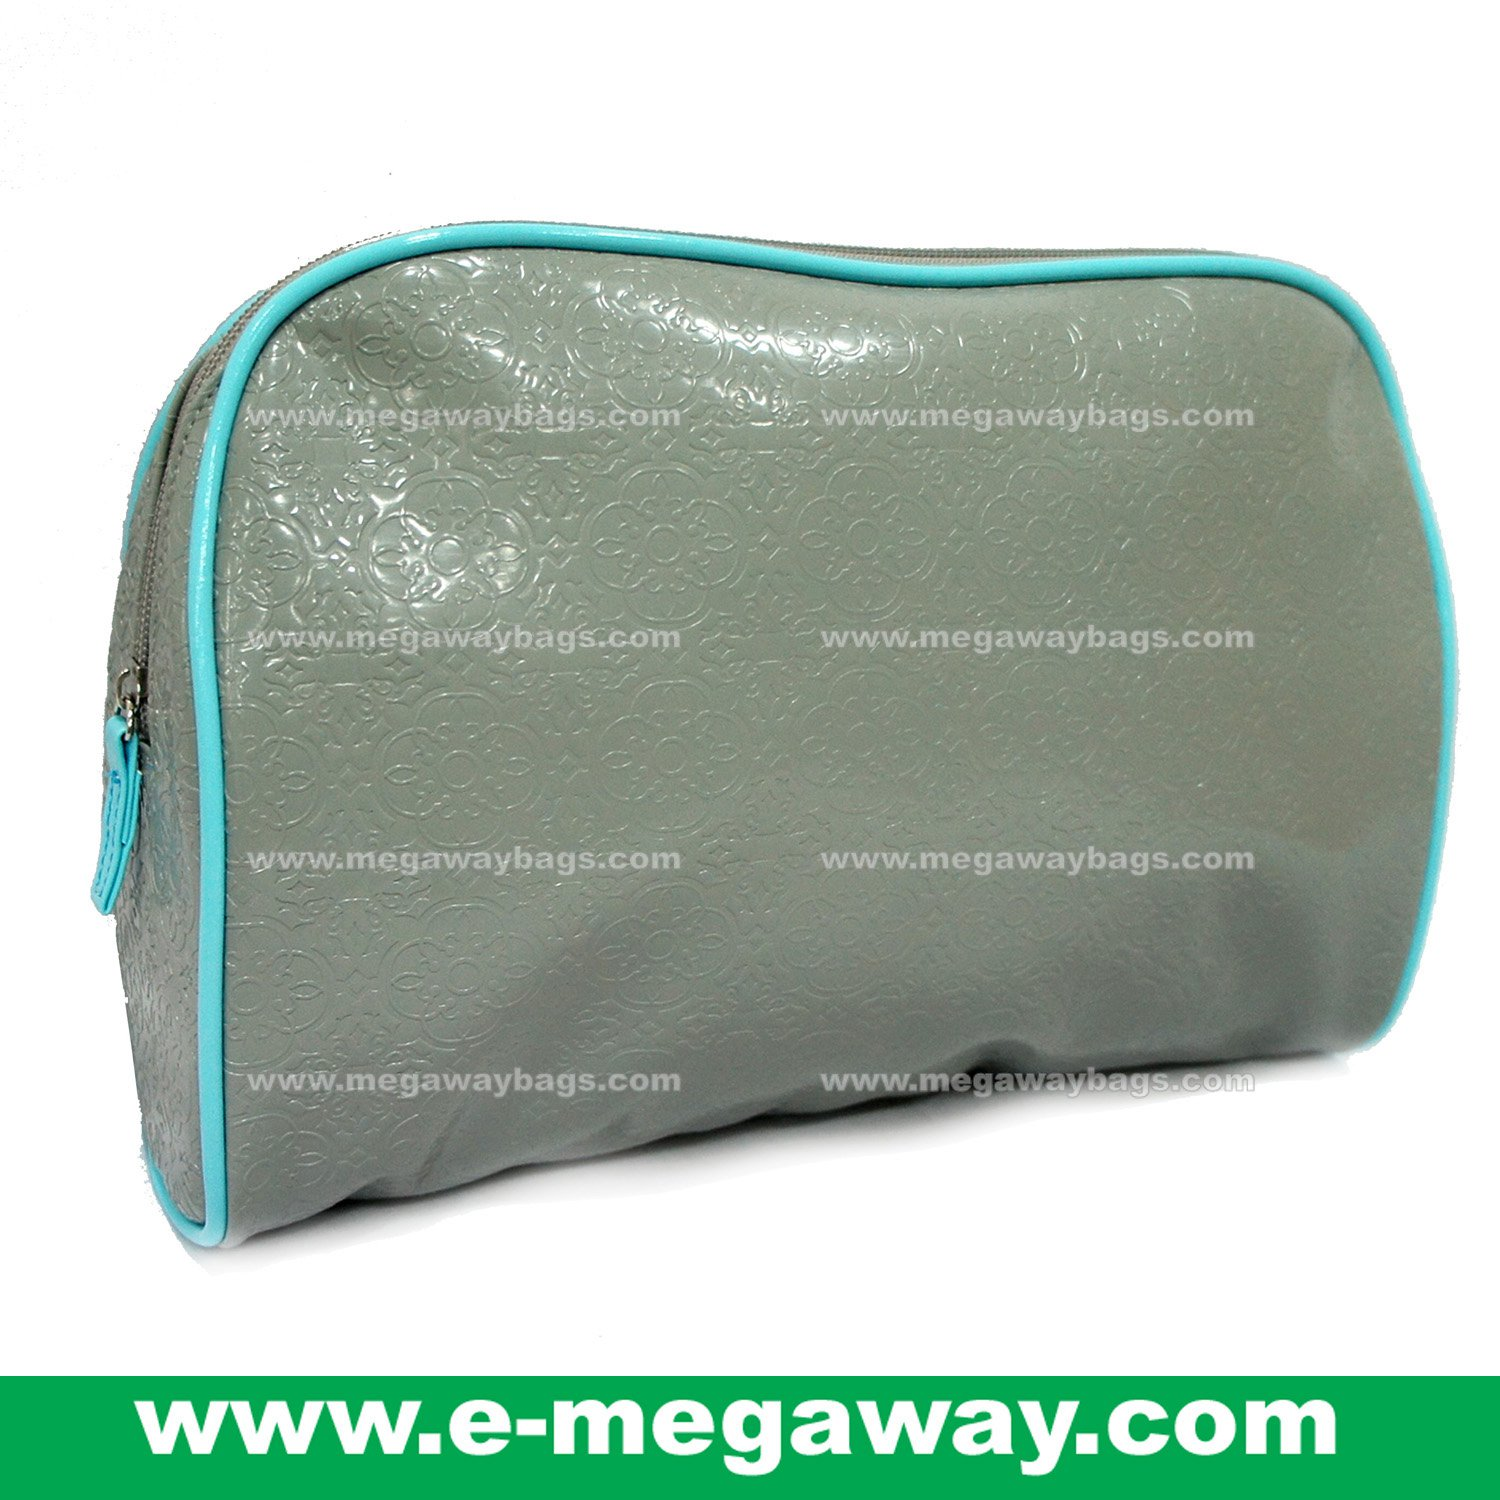 Designers Unique Emboss PVC Beauty Cosmetic Make Up Bags Pouch Purse MegawayBags #CC-0043B